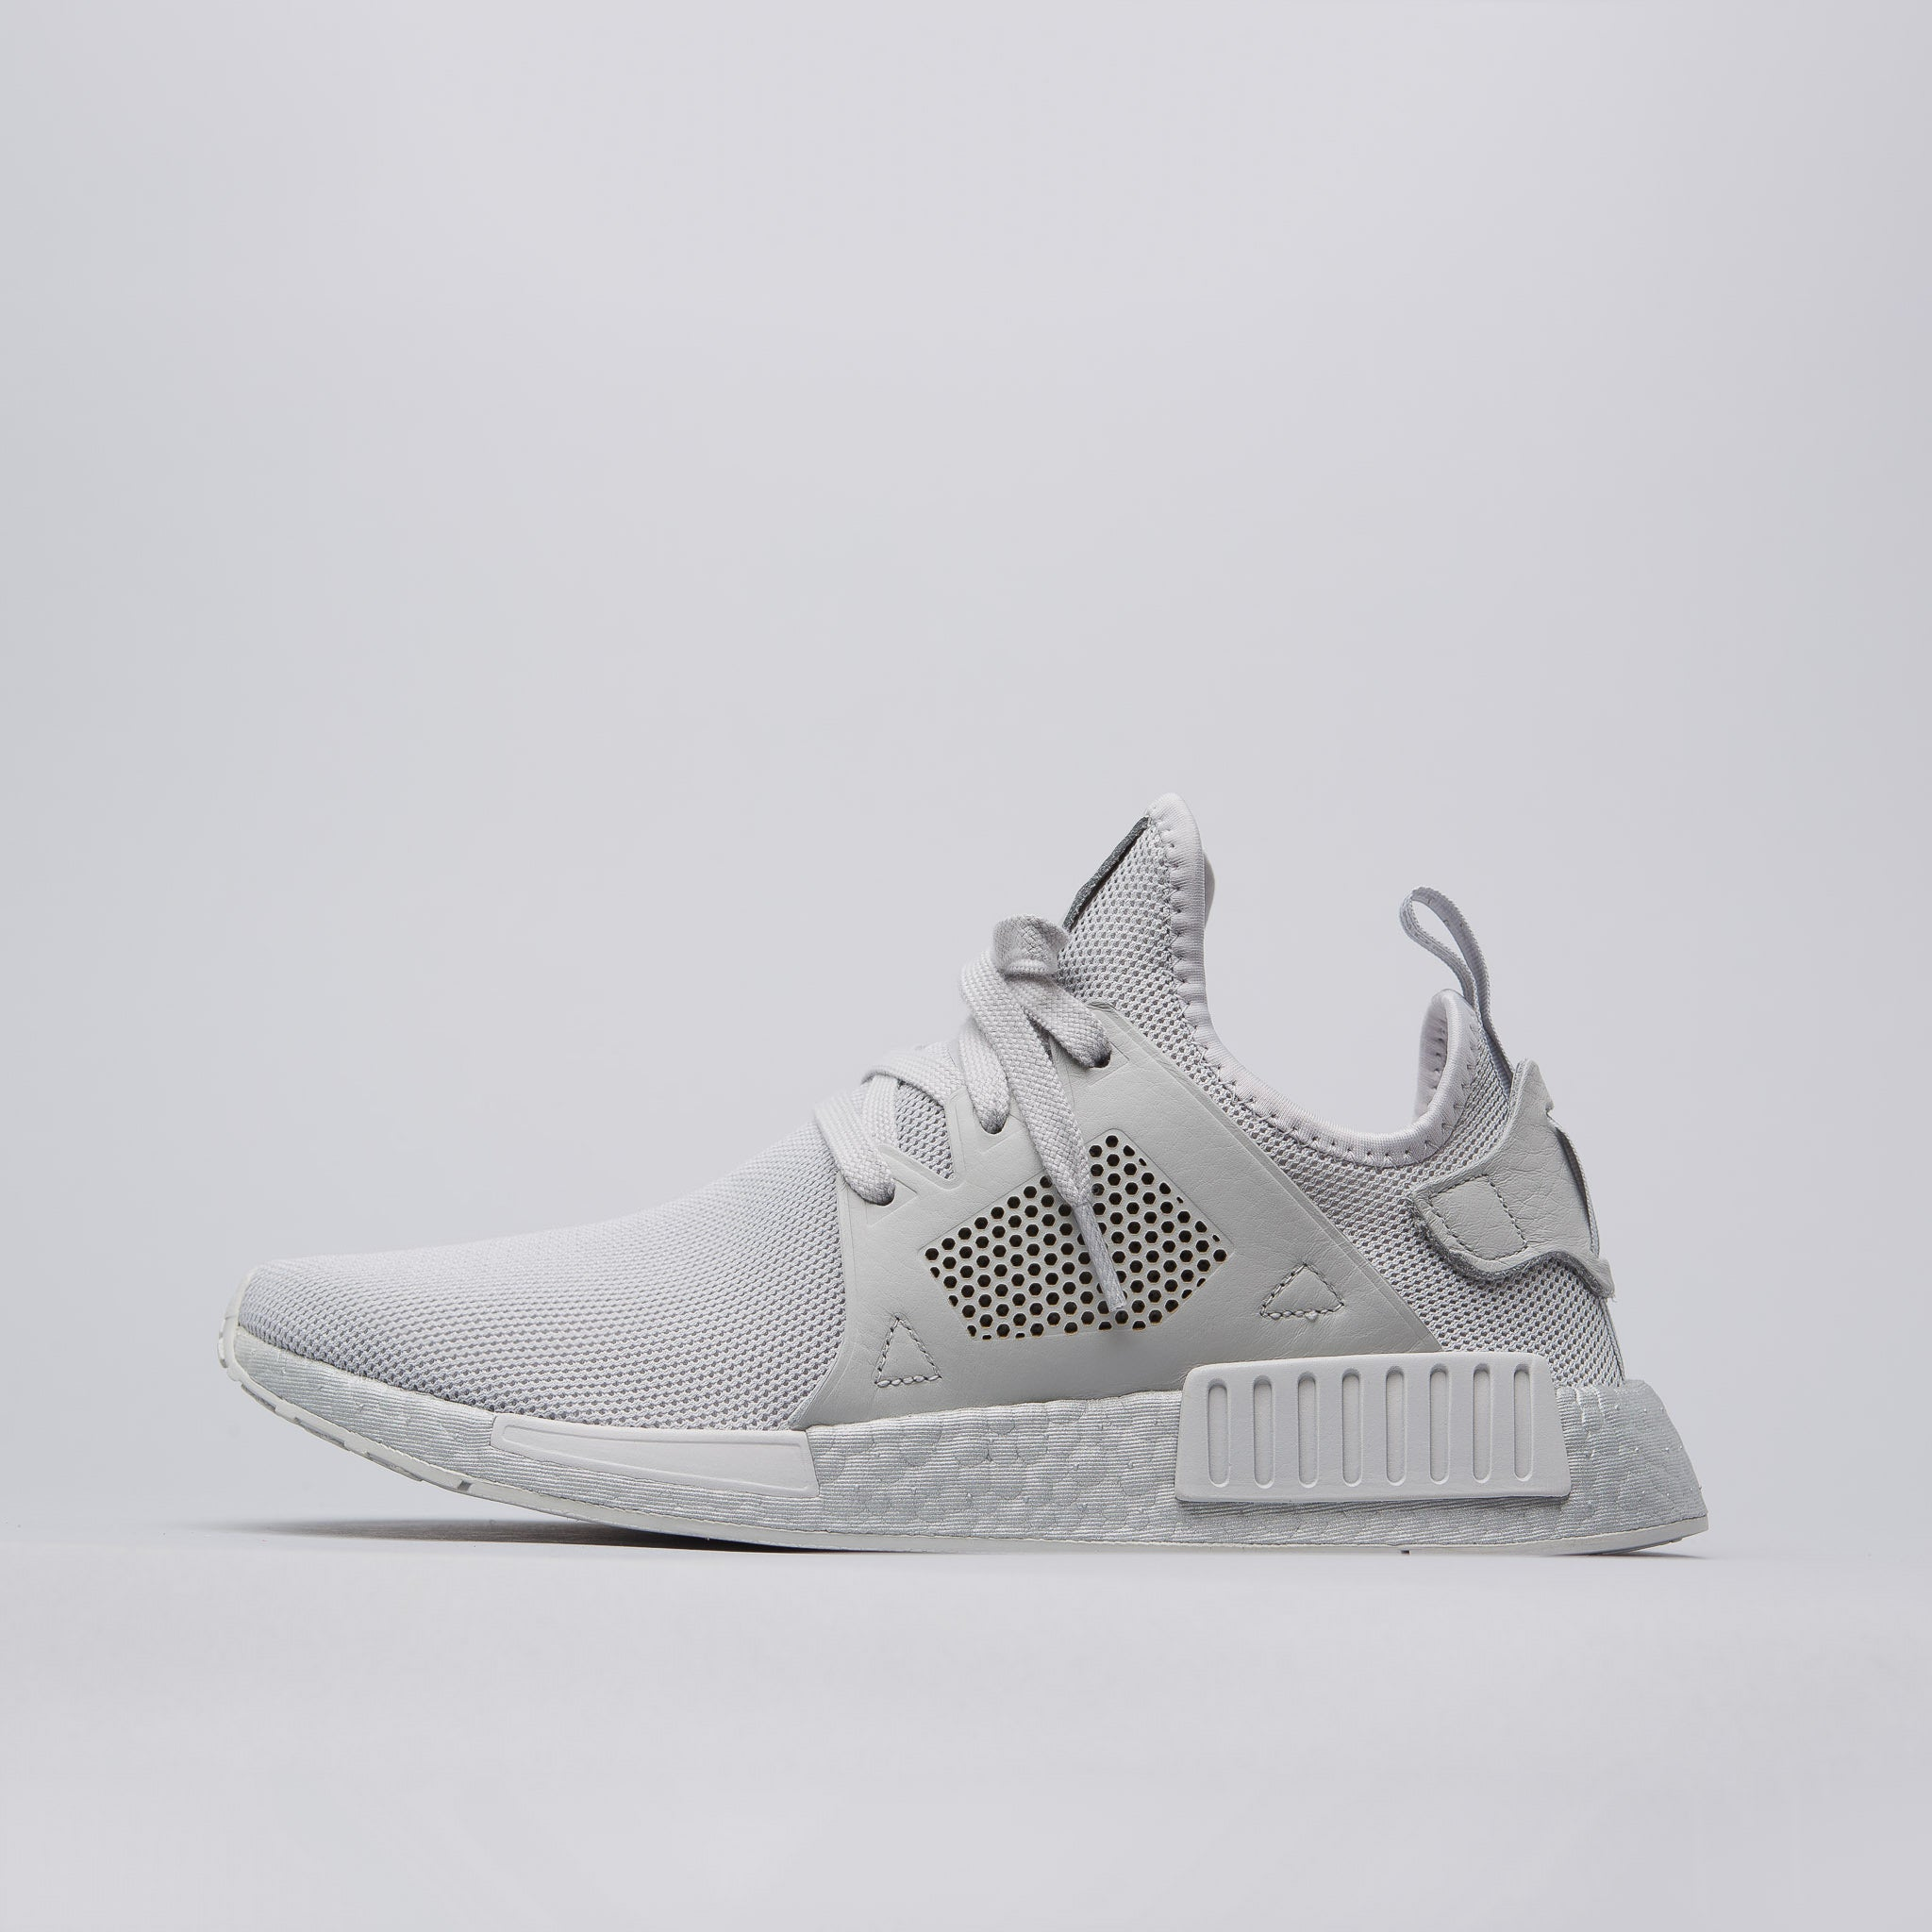 Adidas nmd xr1 'og' by1909 may 20th, 2017 australia, Yeezy Sneakers